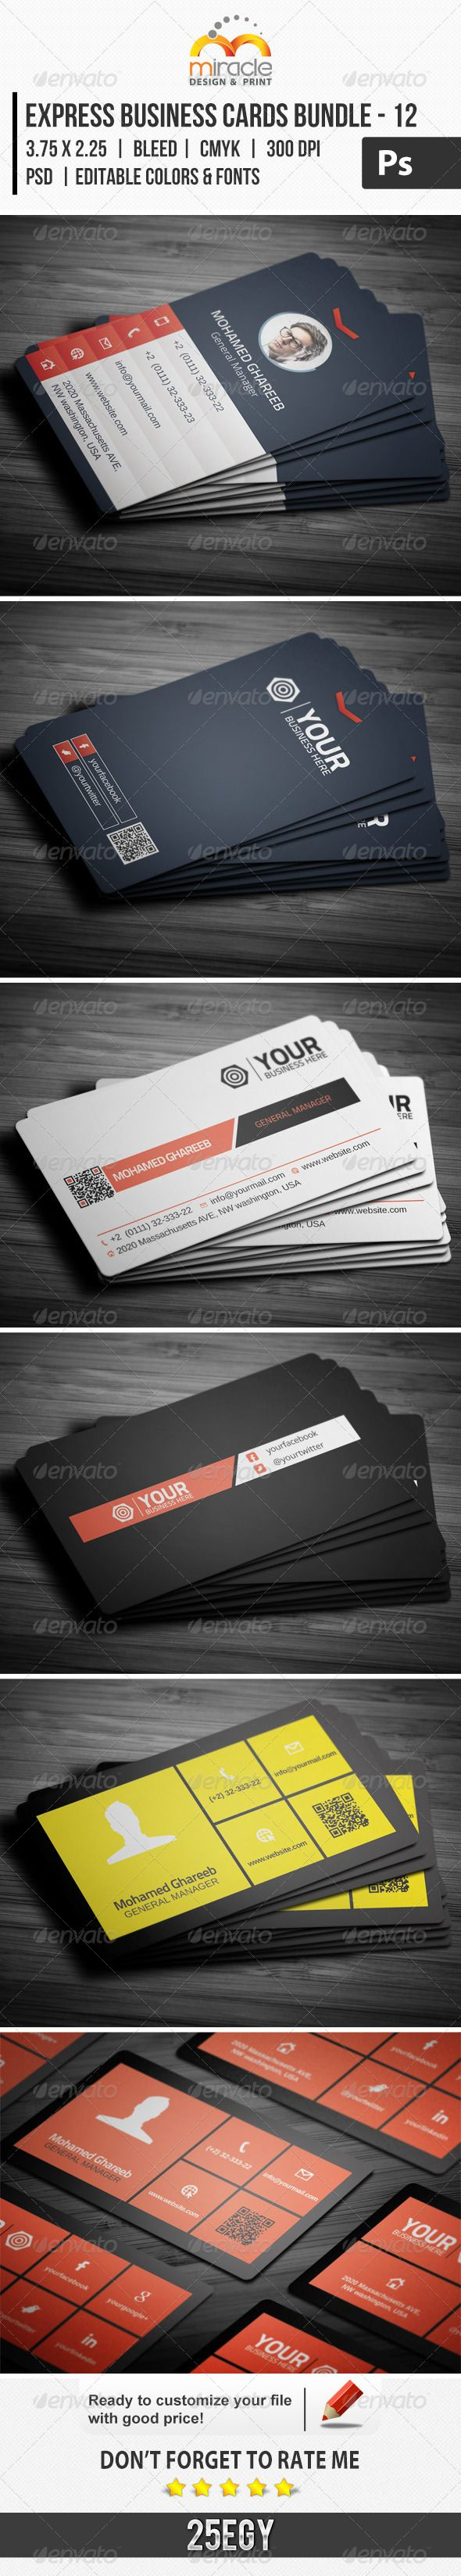 Express business cards bundle 12 creative 12 and business cards express business cards bundle 12 reheart Gallery